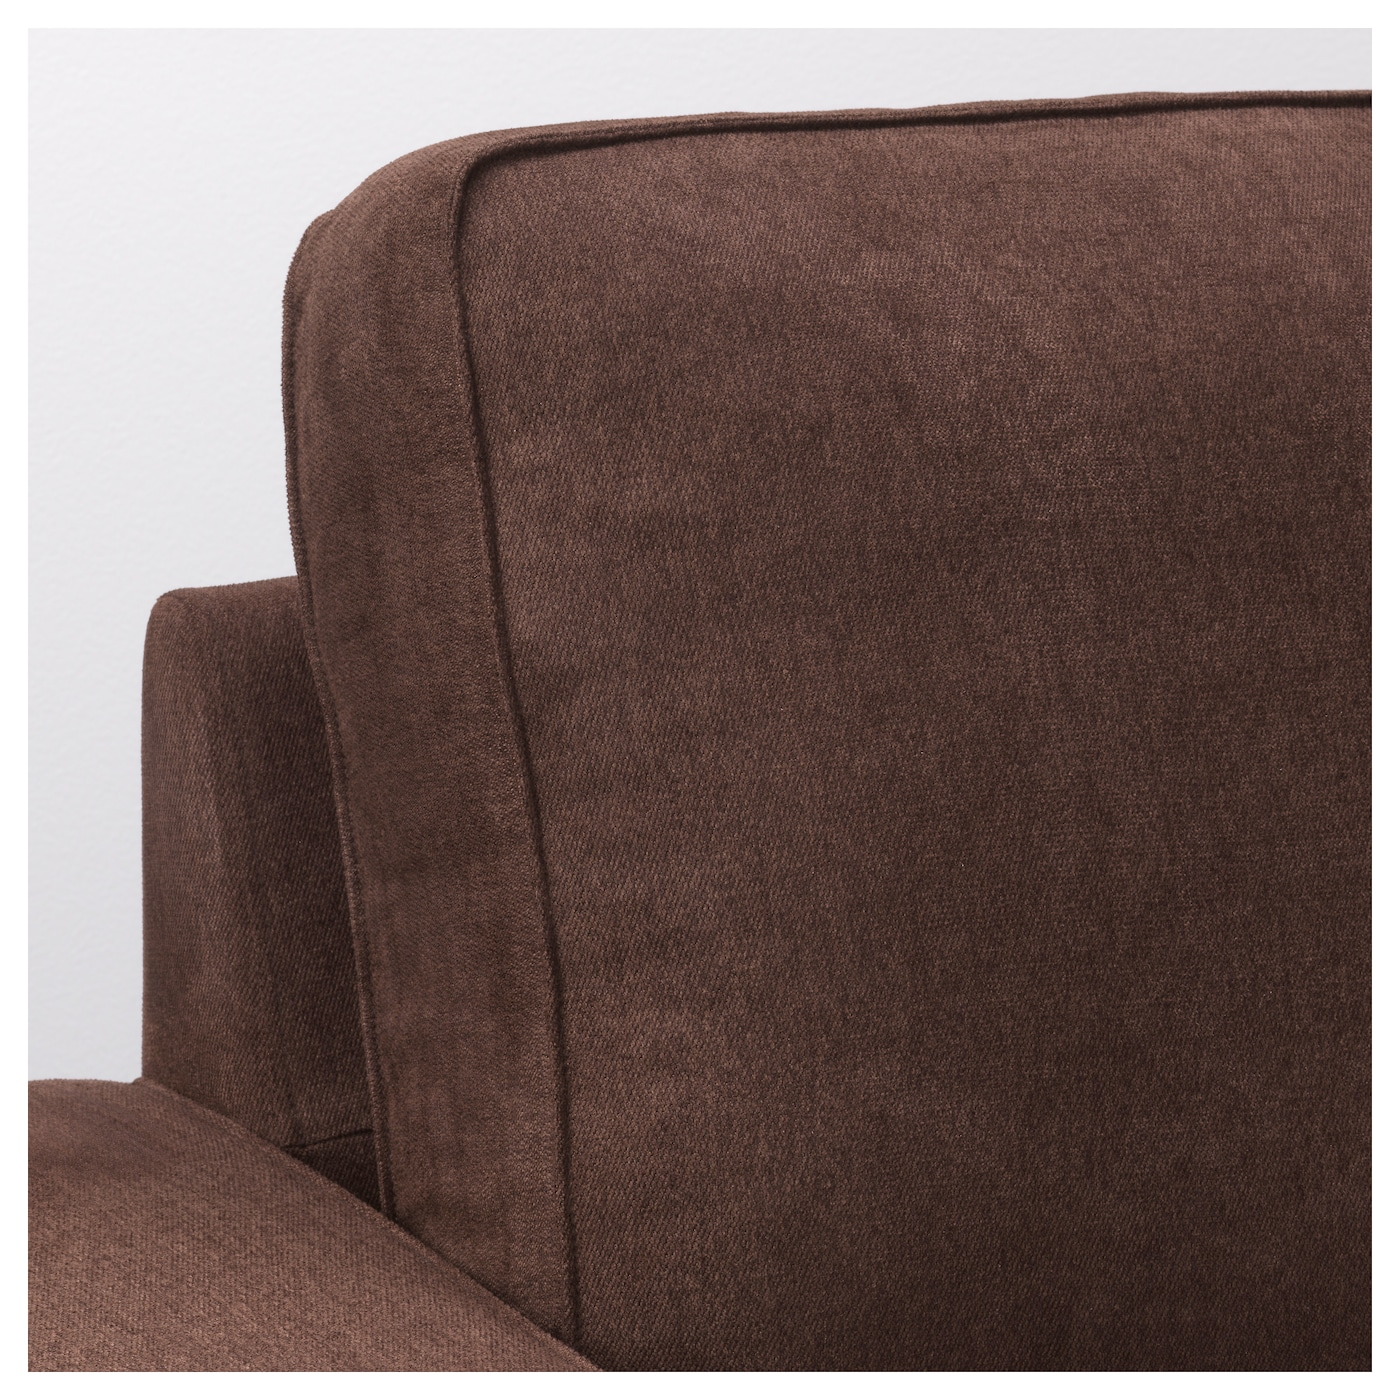 Kivik three seat sofa and chaise longue borred dark brown for Brown chaise longue